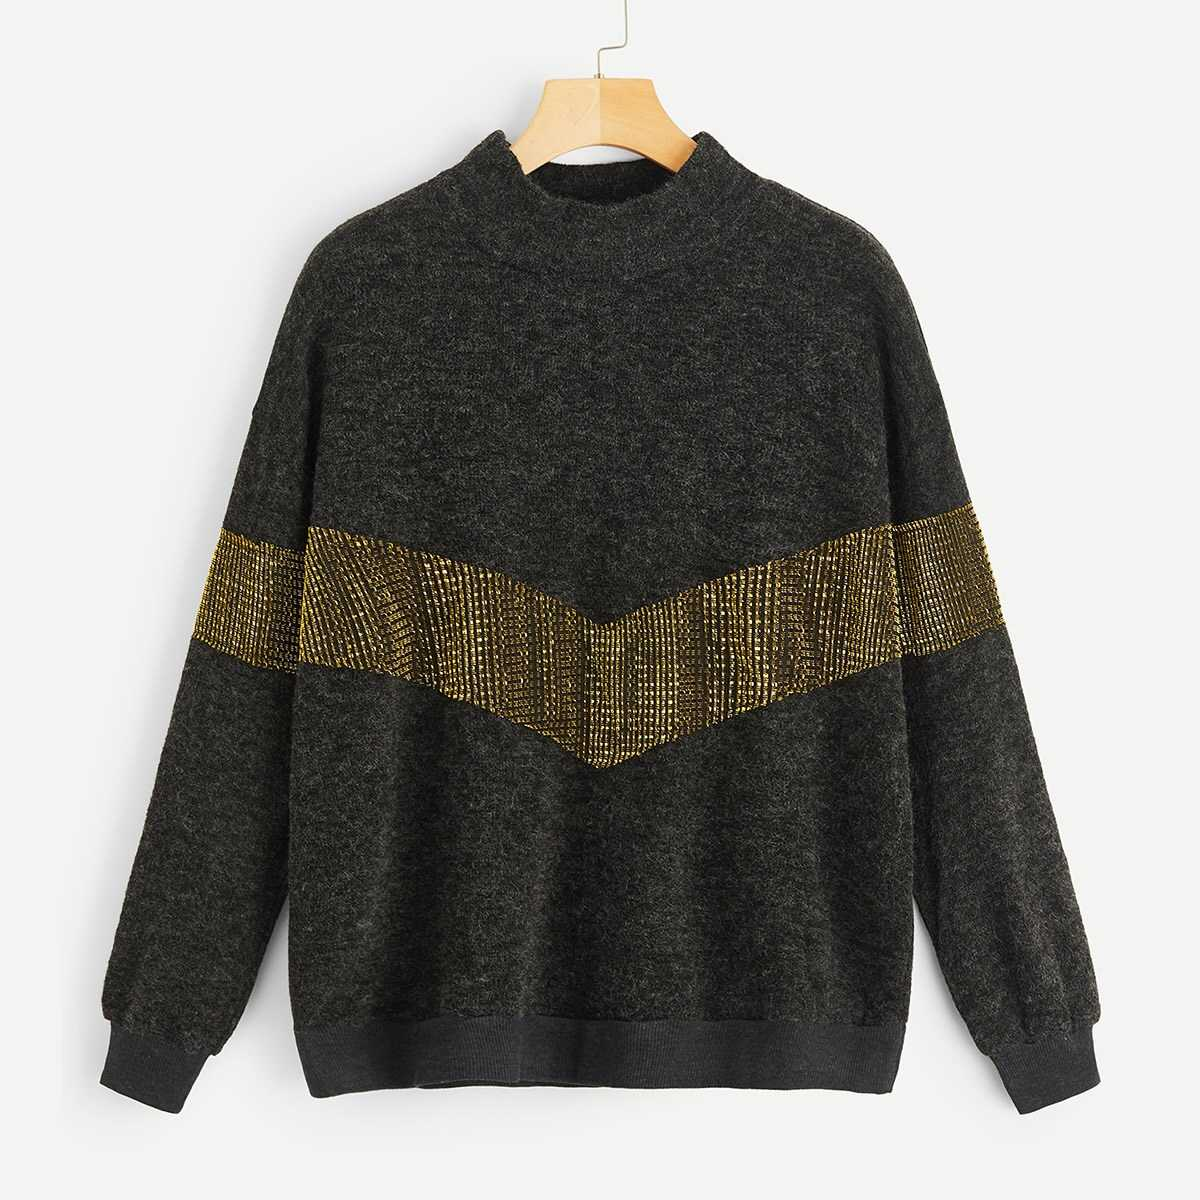 3a38230e67cb Contrast Panel Drop Shoulder Sweater Shein | GOOFASH SHOP